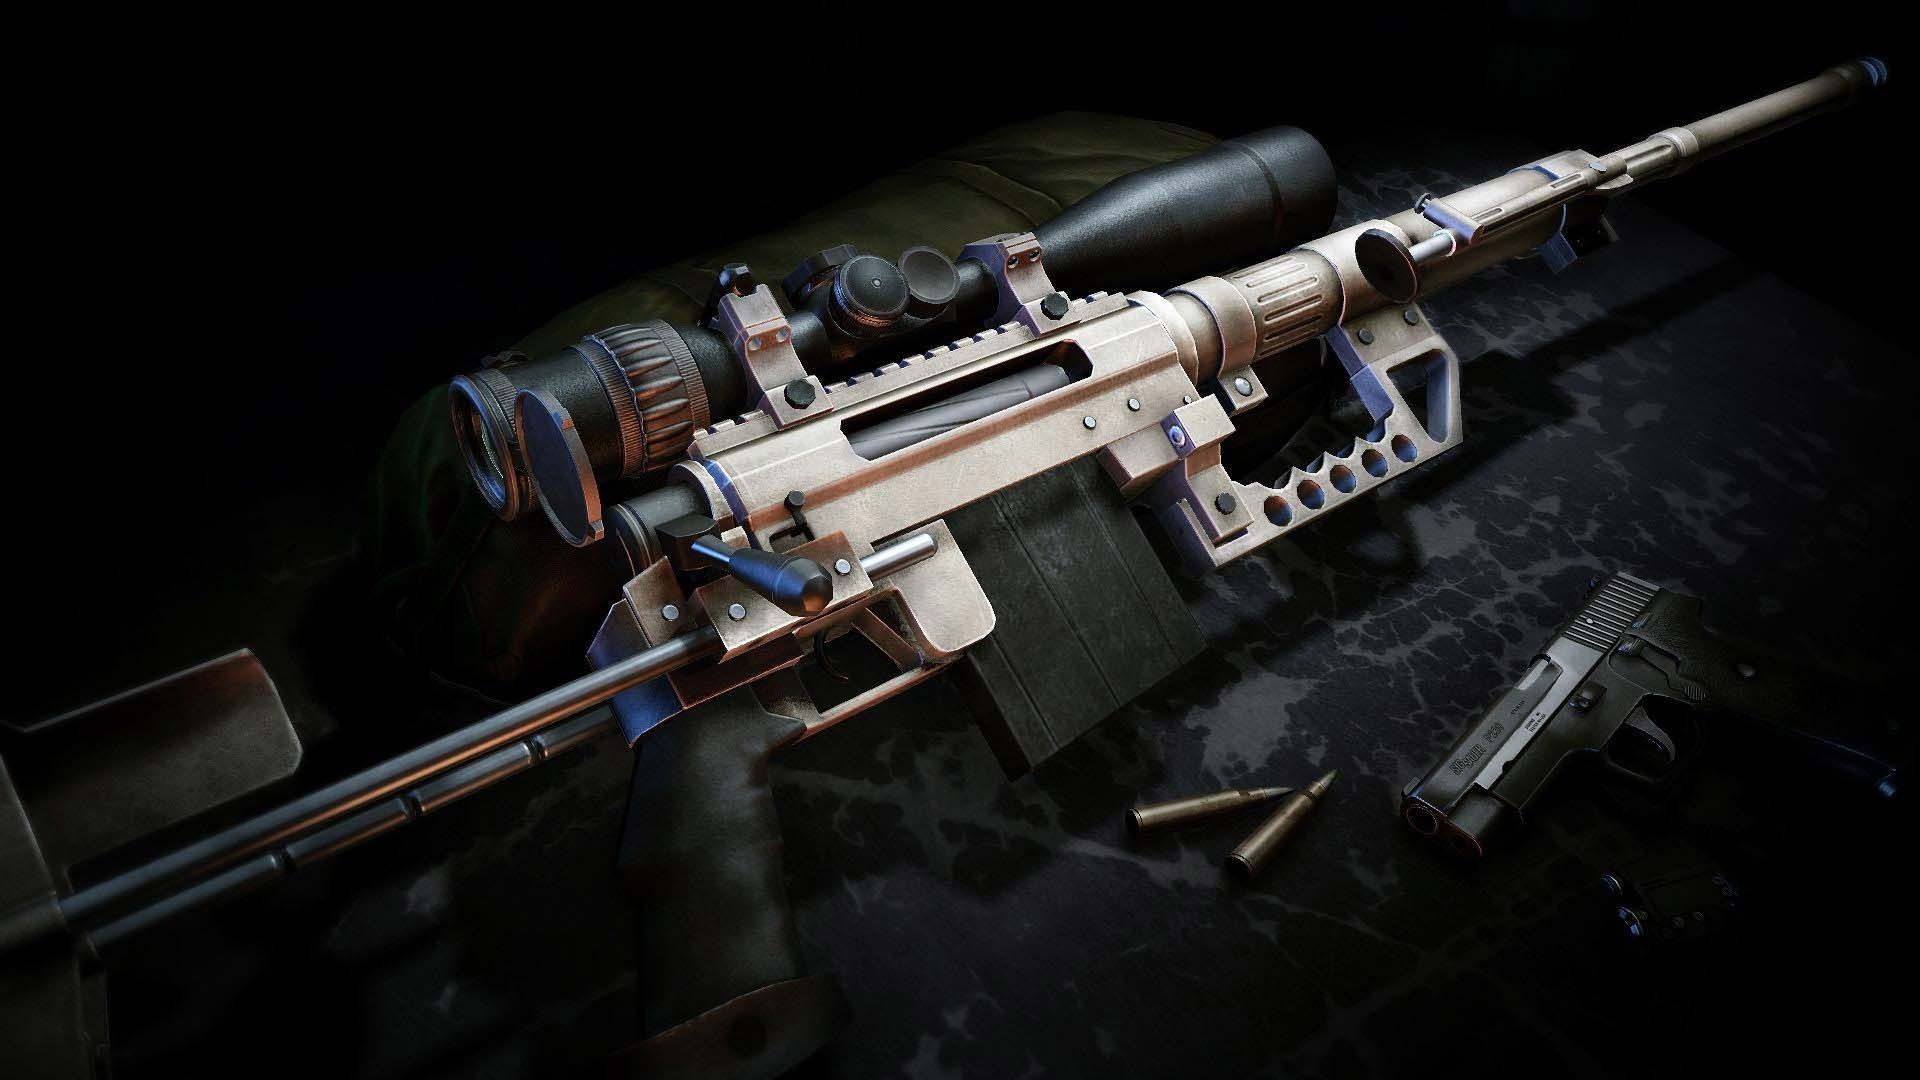 1920x1080 Future Sniper Rifle | HD Guns Wallpaper Free Download ...